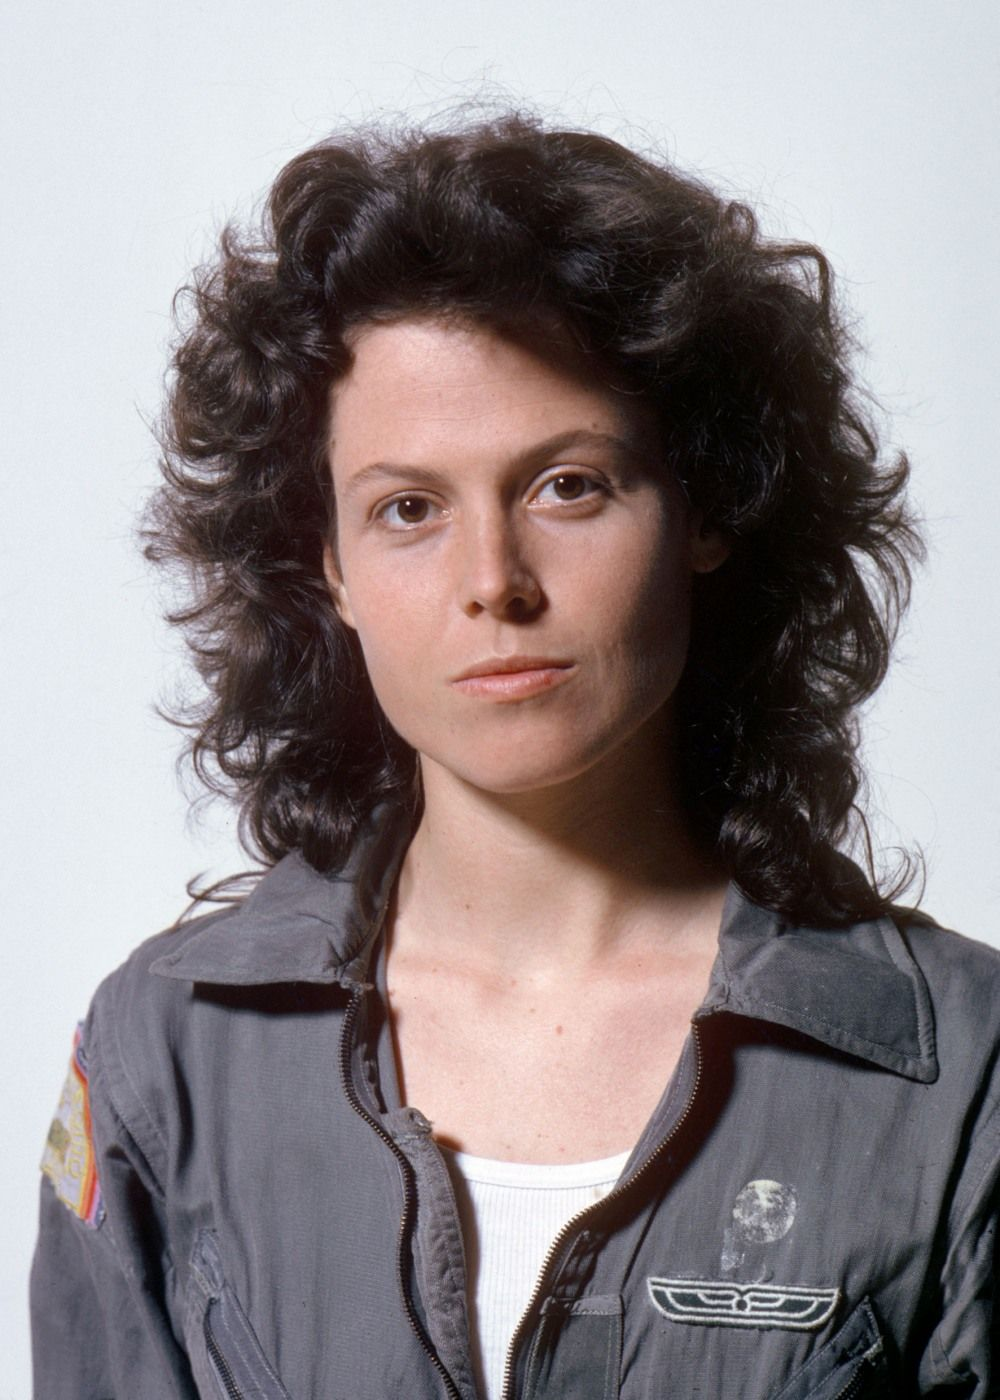 sigourney weaver talks alien sequel, playing ripley, and more